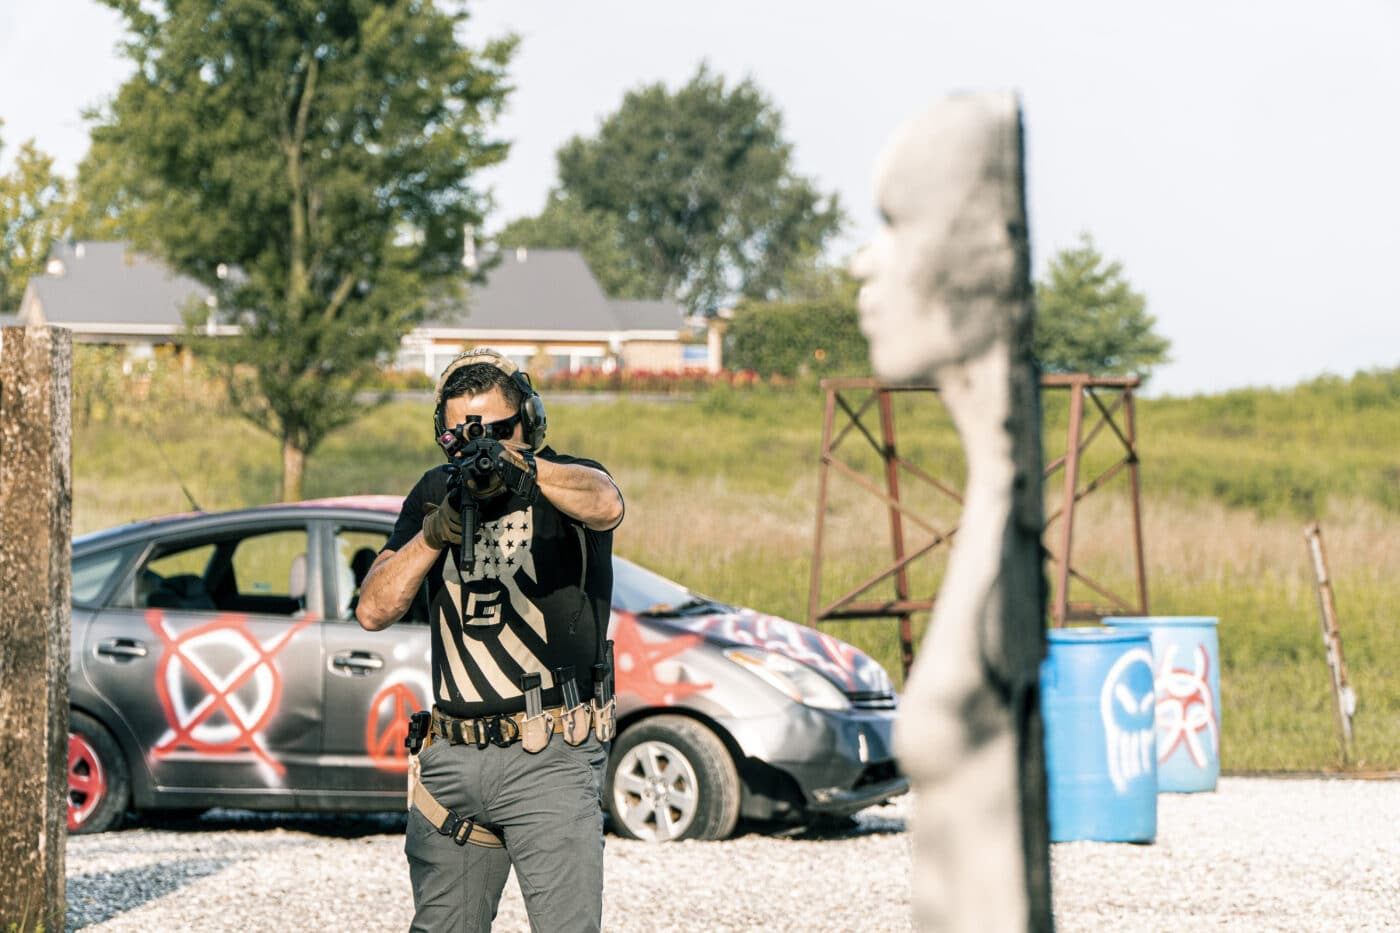 Man training with Rubber Dummies target